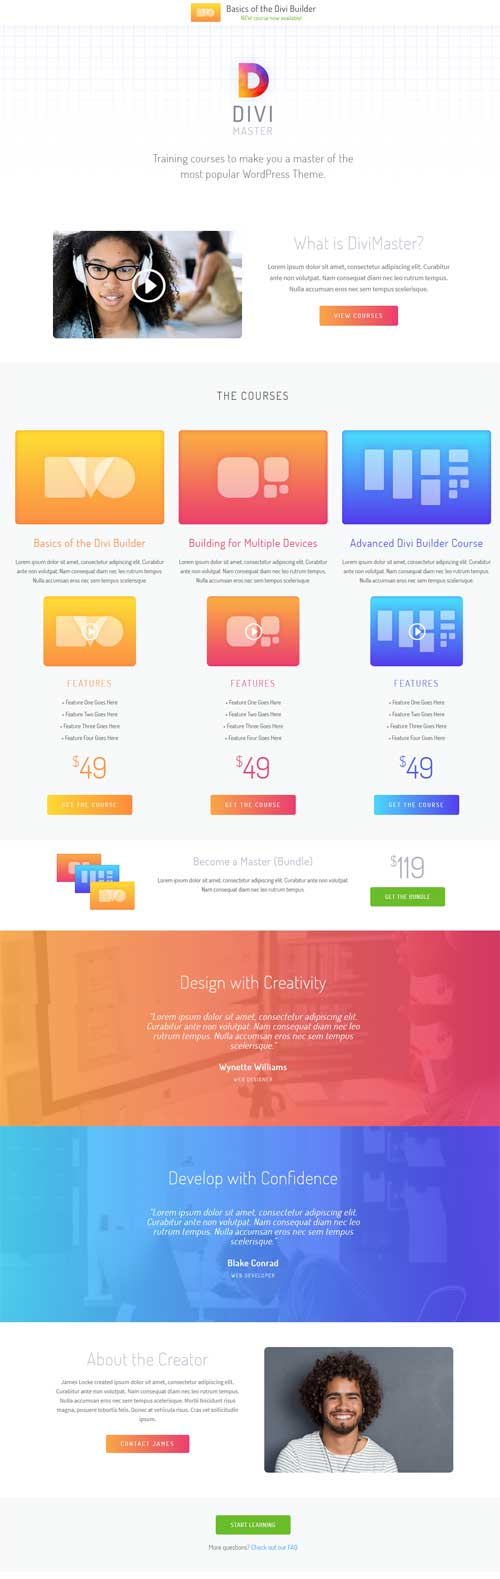 Divi course page layout